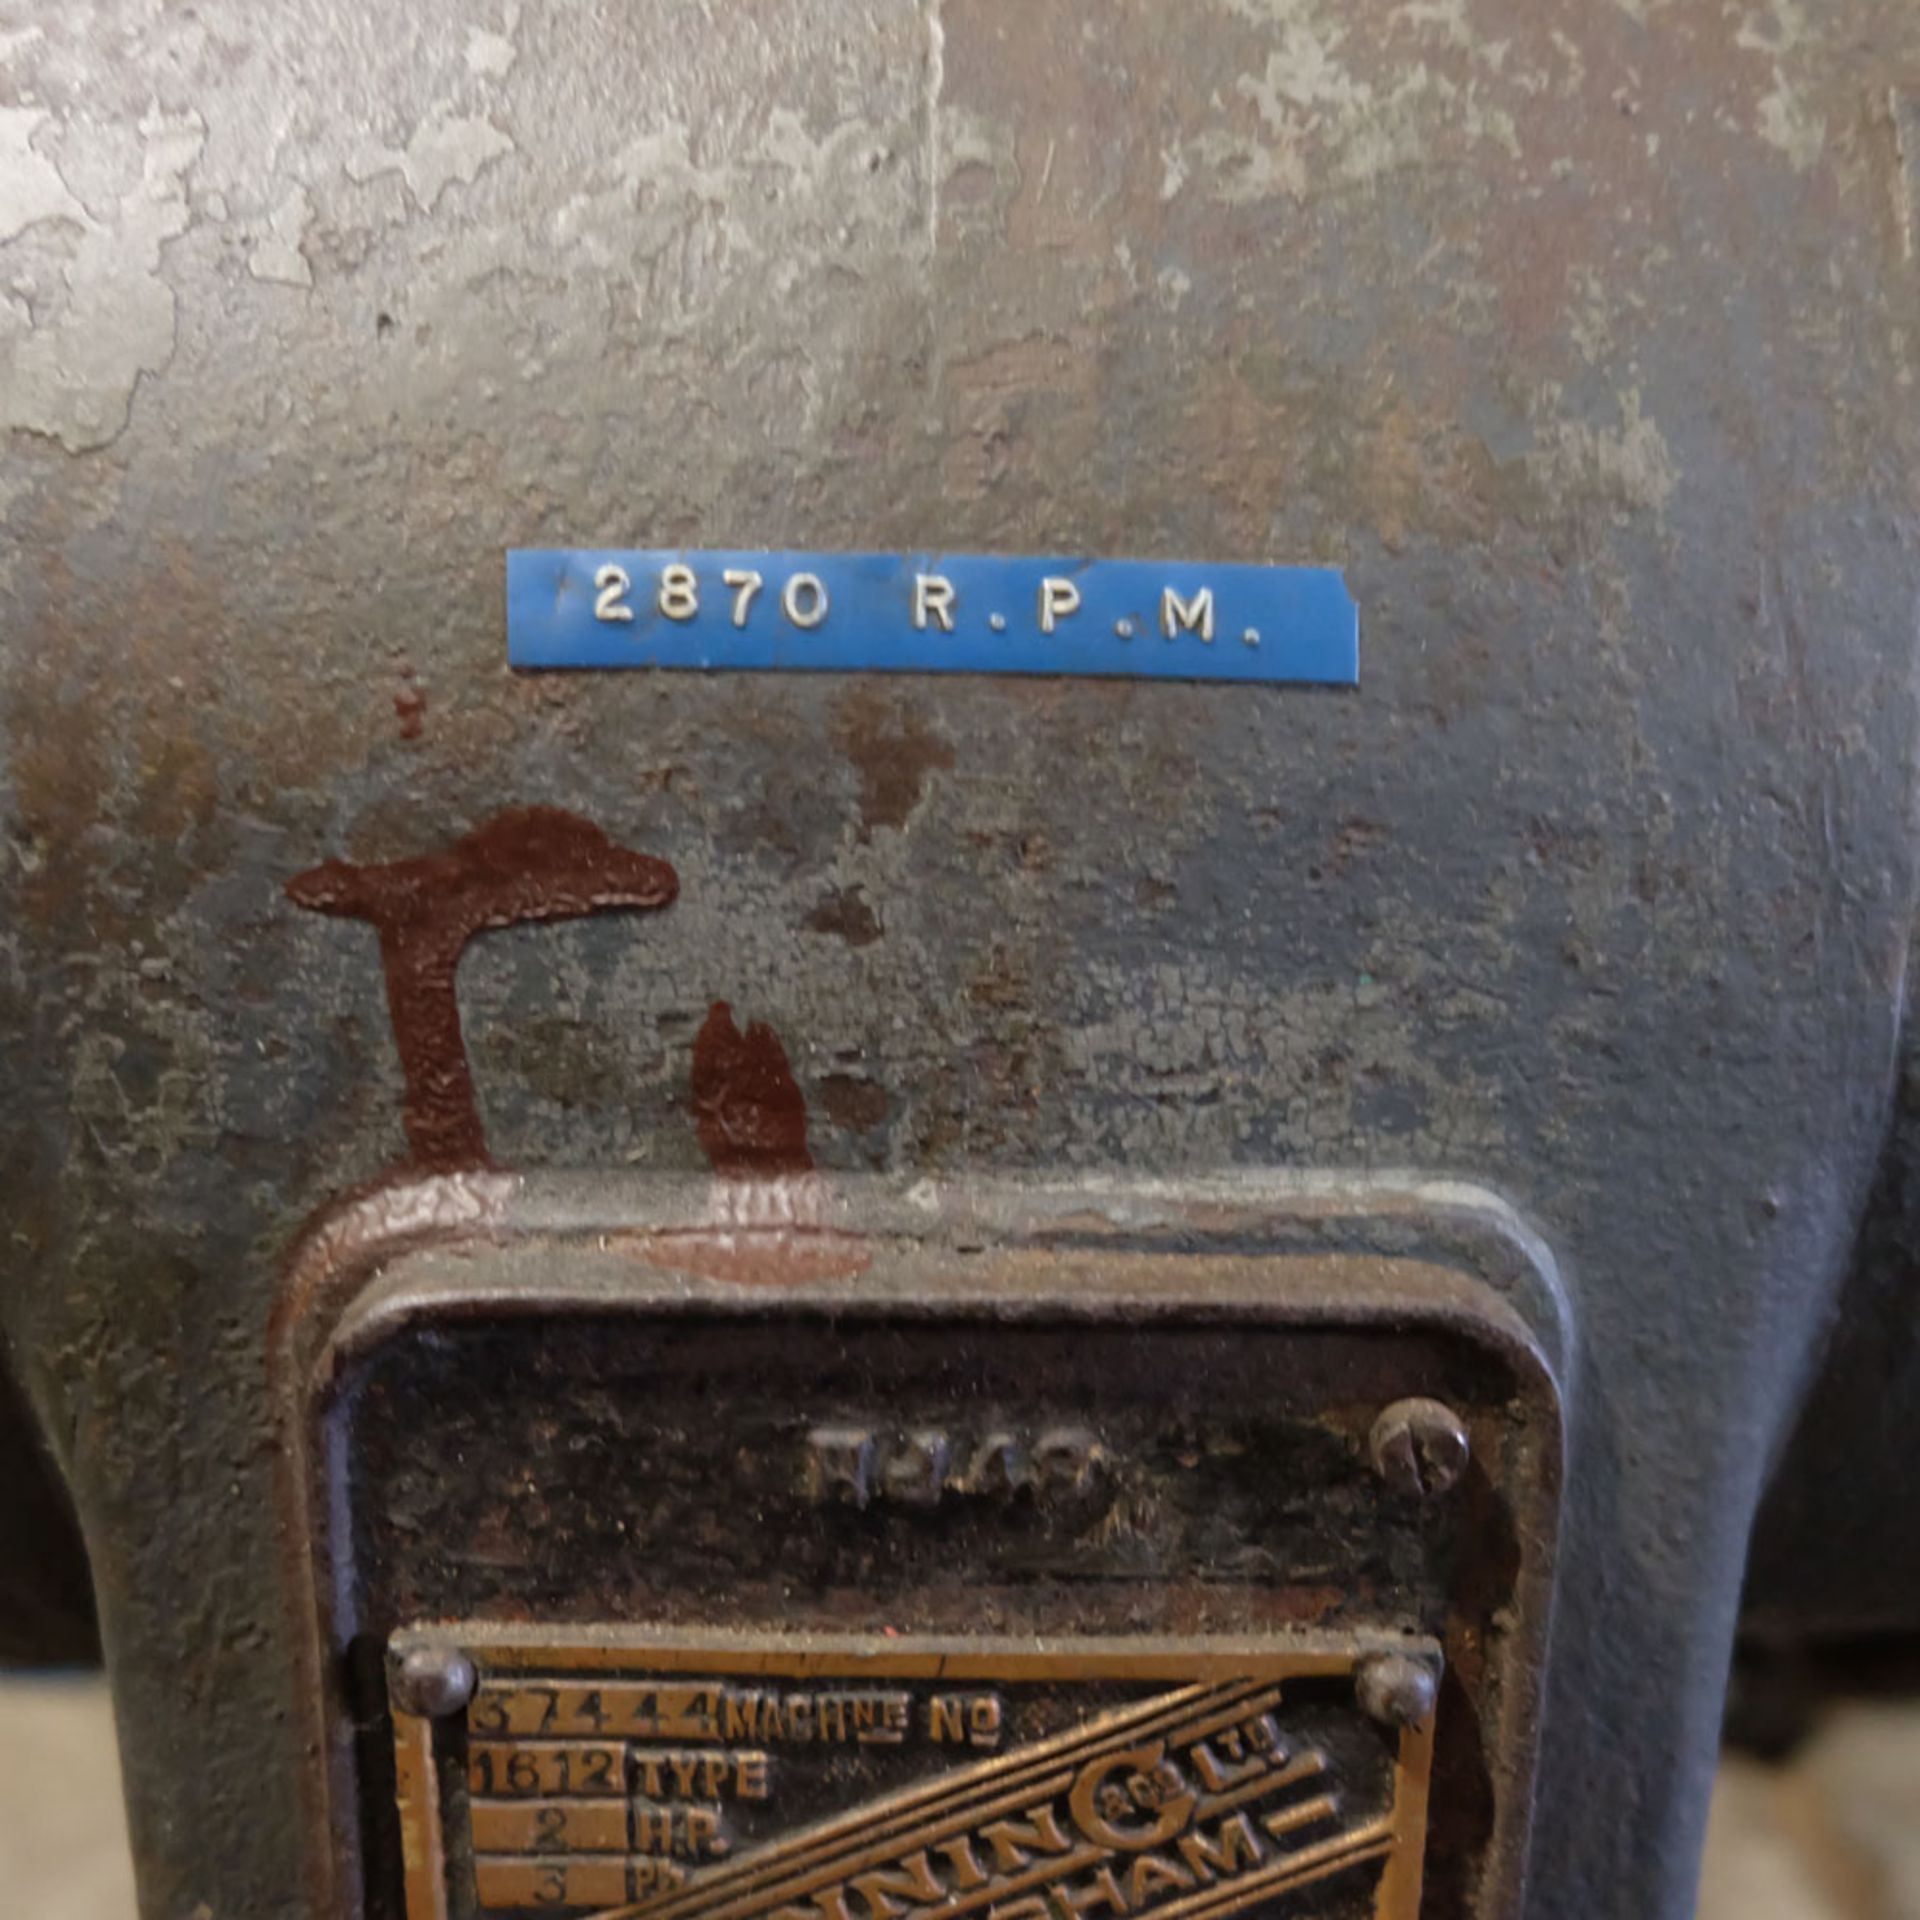 Canning Type 16/12 Double Ended Pedestal Polishing Machine. 2870rpm. - Image 5 of 6